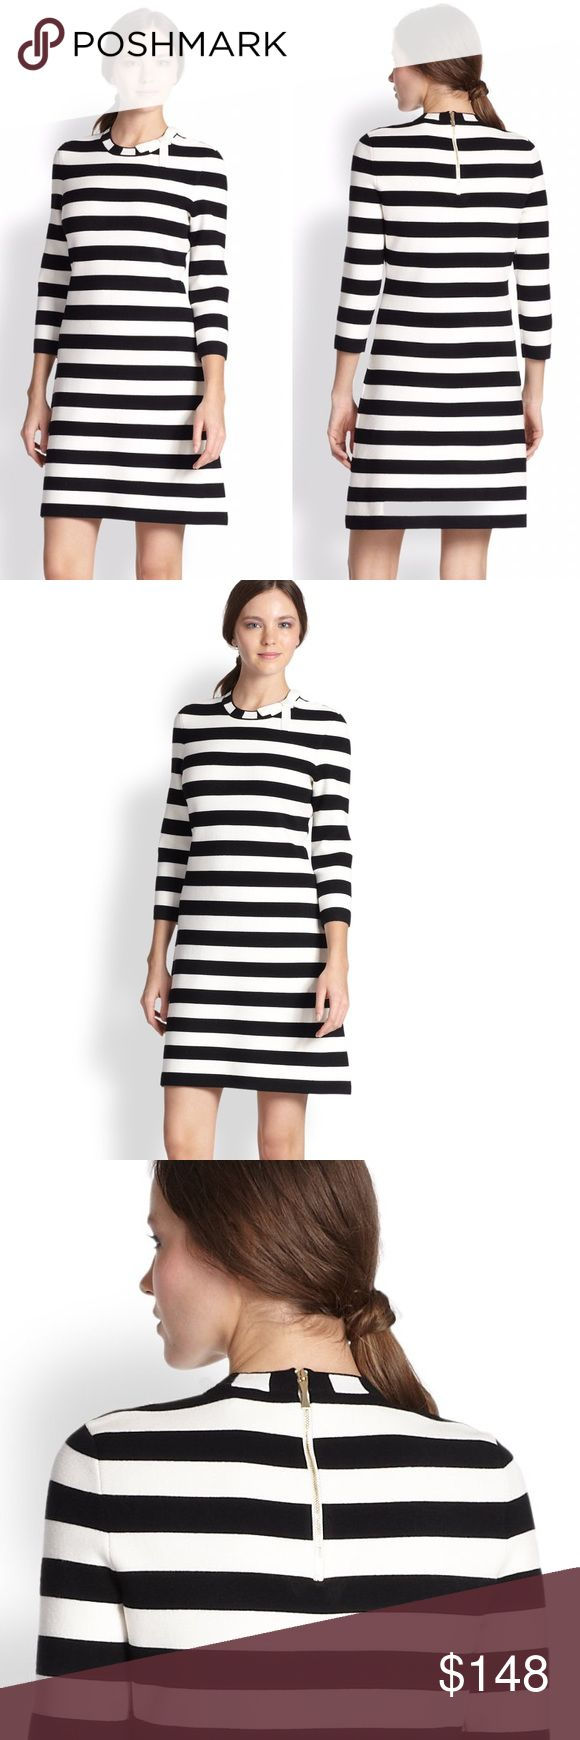 Kate Spade • Shira black and white striped dress Kate Spade ♠️ Shira striped black and white 3/4 sleeve dress. Almost could be considered a sweater dress. Thick material. Size S. Retail $238. See size guide and specs last 2 photos. Little makeup spot on back inside zipper but everything else looks fantastic. kate spade Dresses